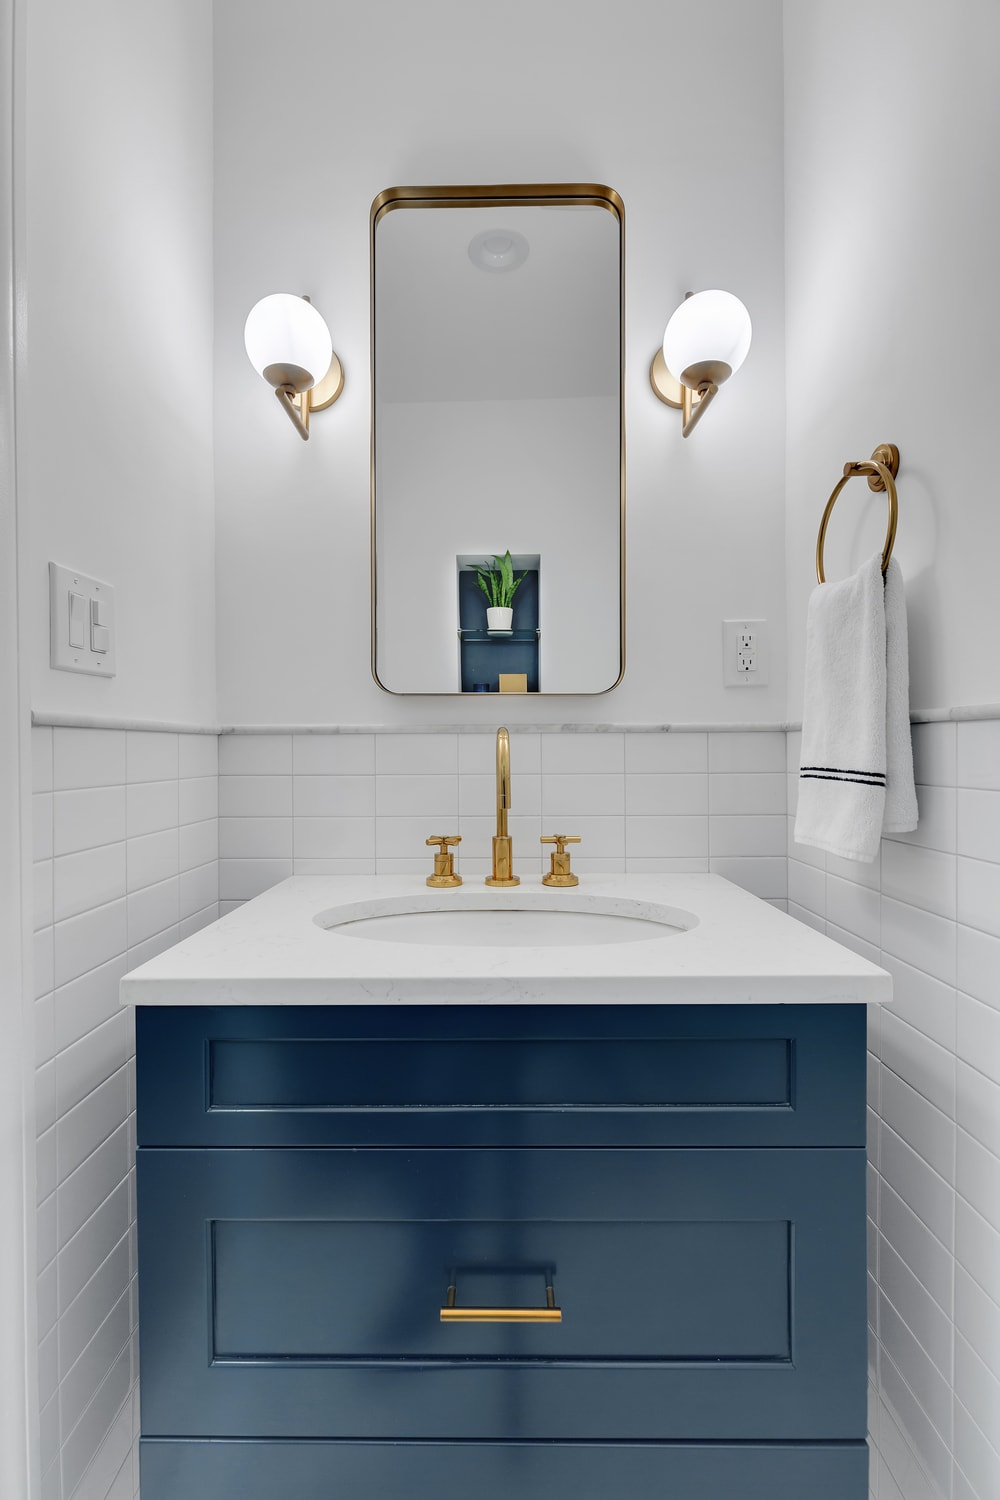 6 Nyc Small Bathroom Remodel Ideas That Ll Change Your Life Gallery Kitchen And Bath